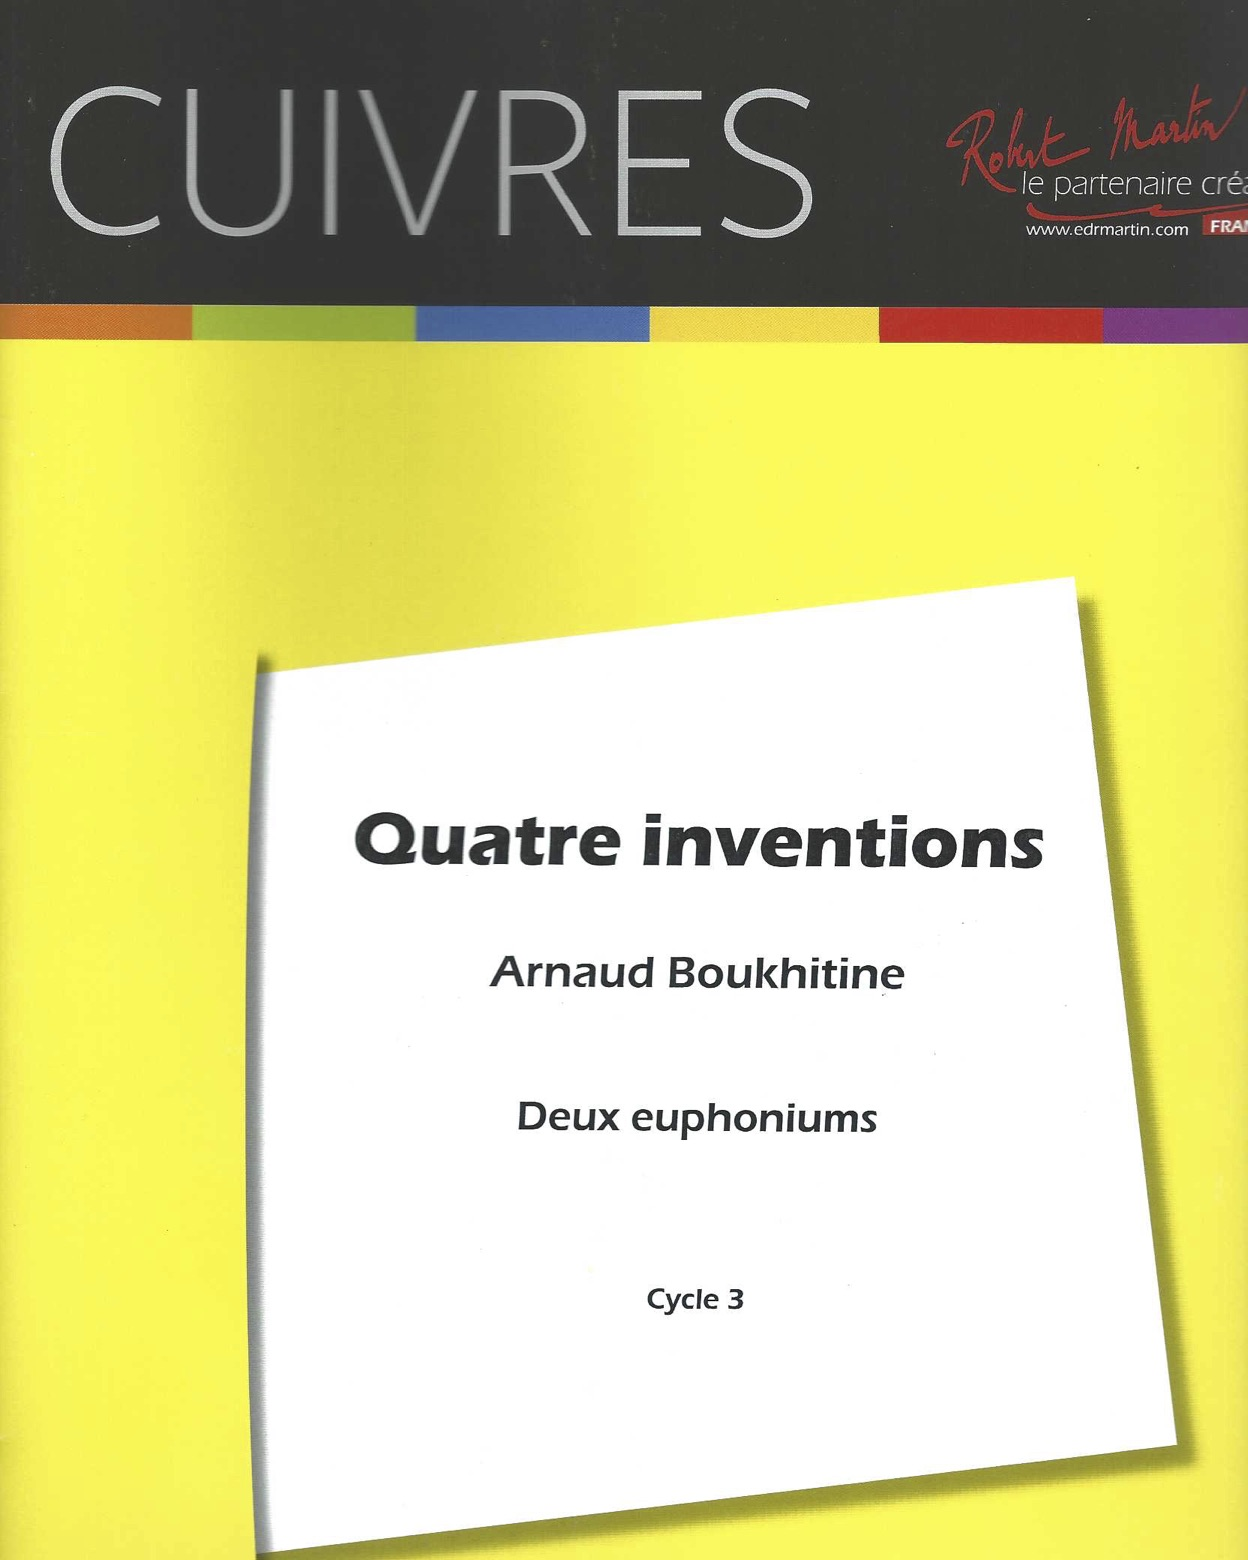 Quatre Inventions (Four Inventions) for two euphoniums (unaccompanied) - Arnaud Boukhitine